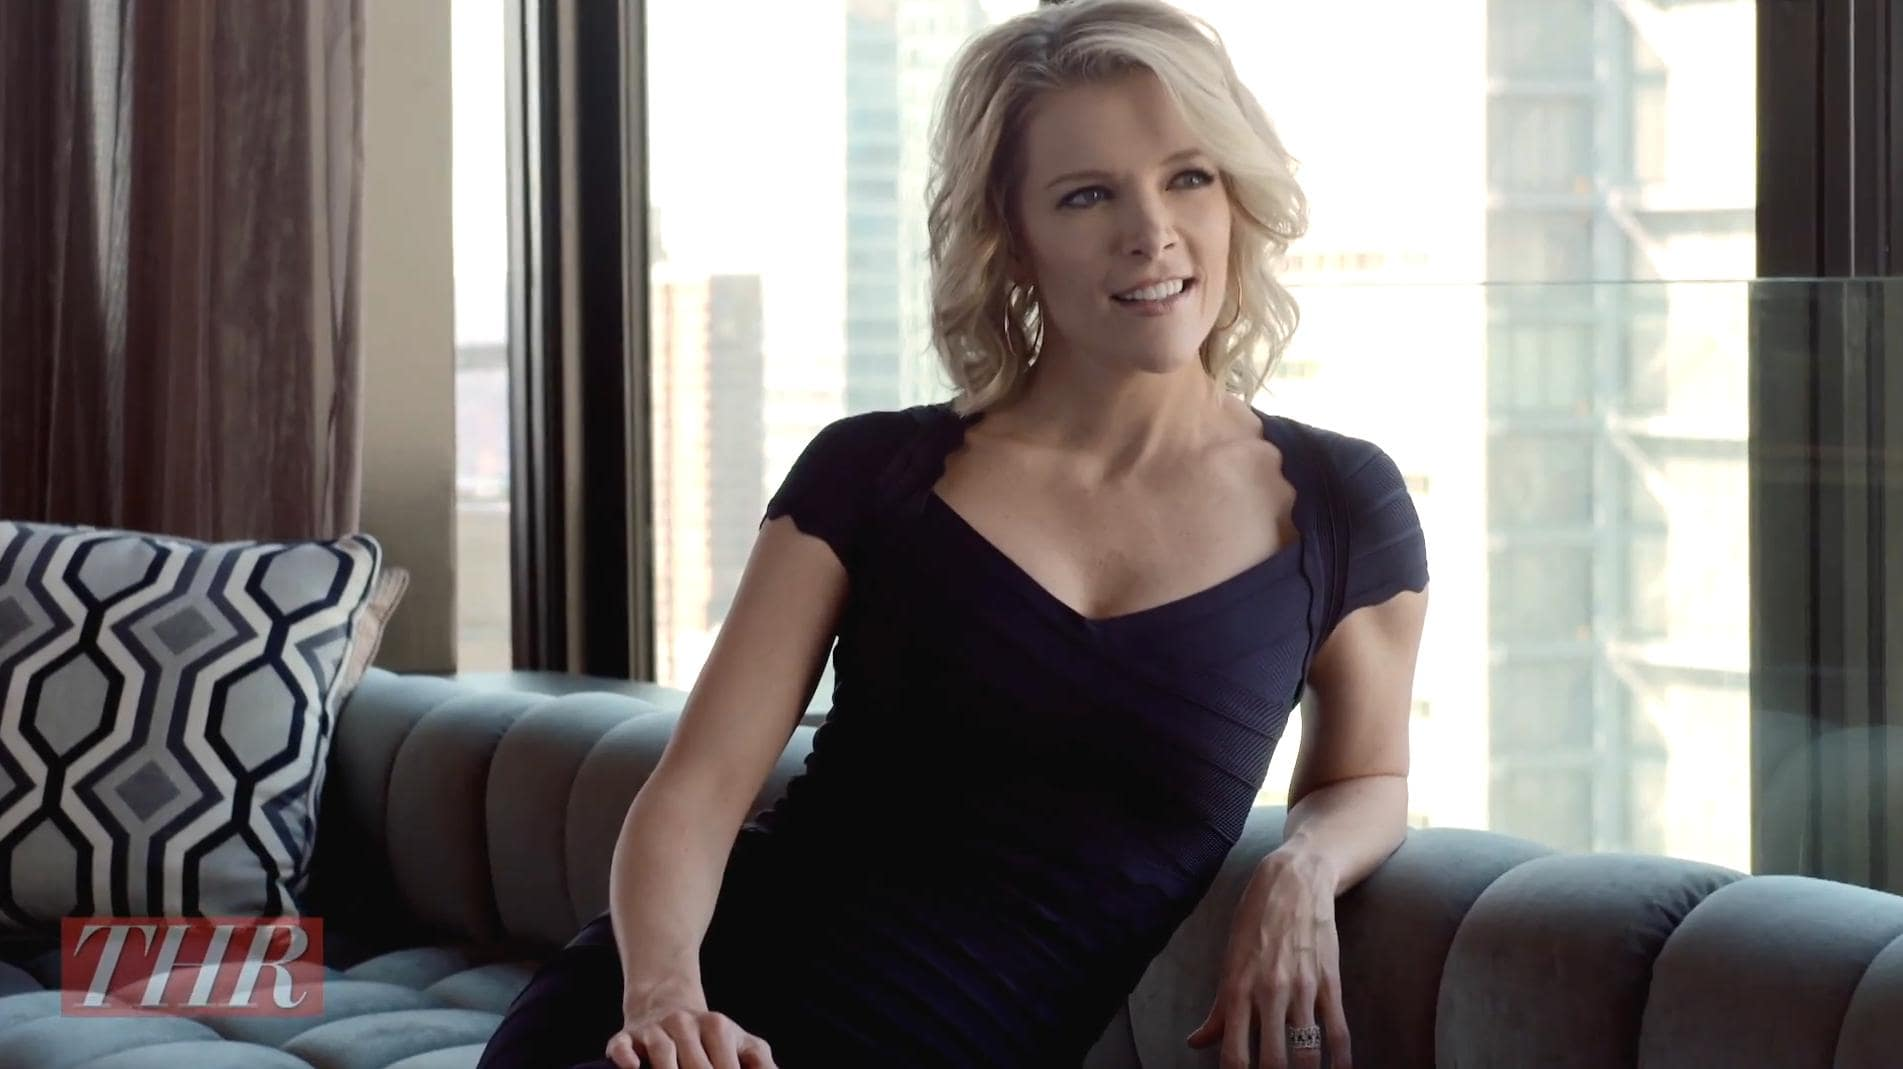 Hot Megyn Kelly nude photos 2019